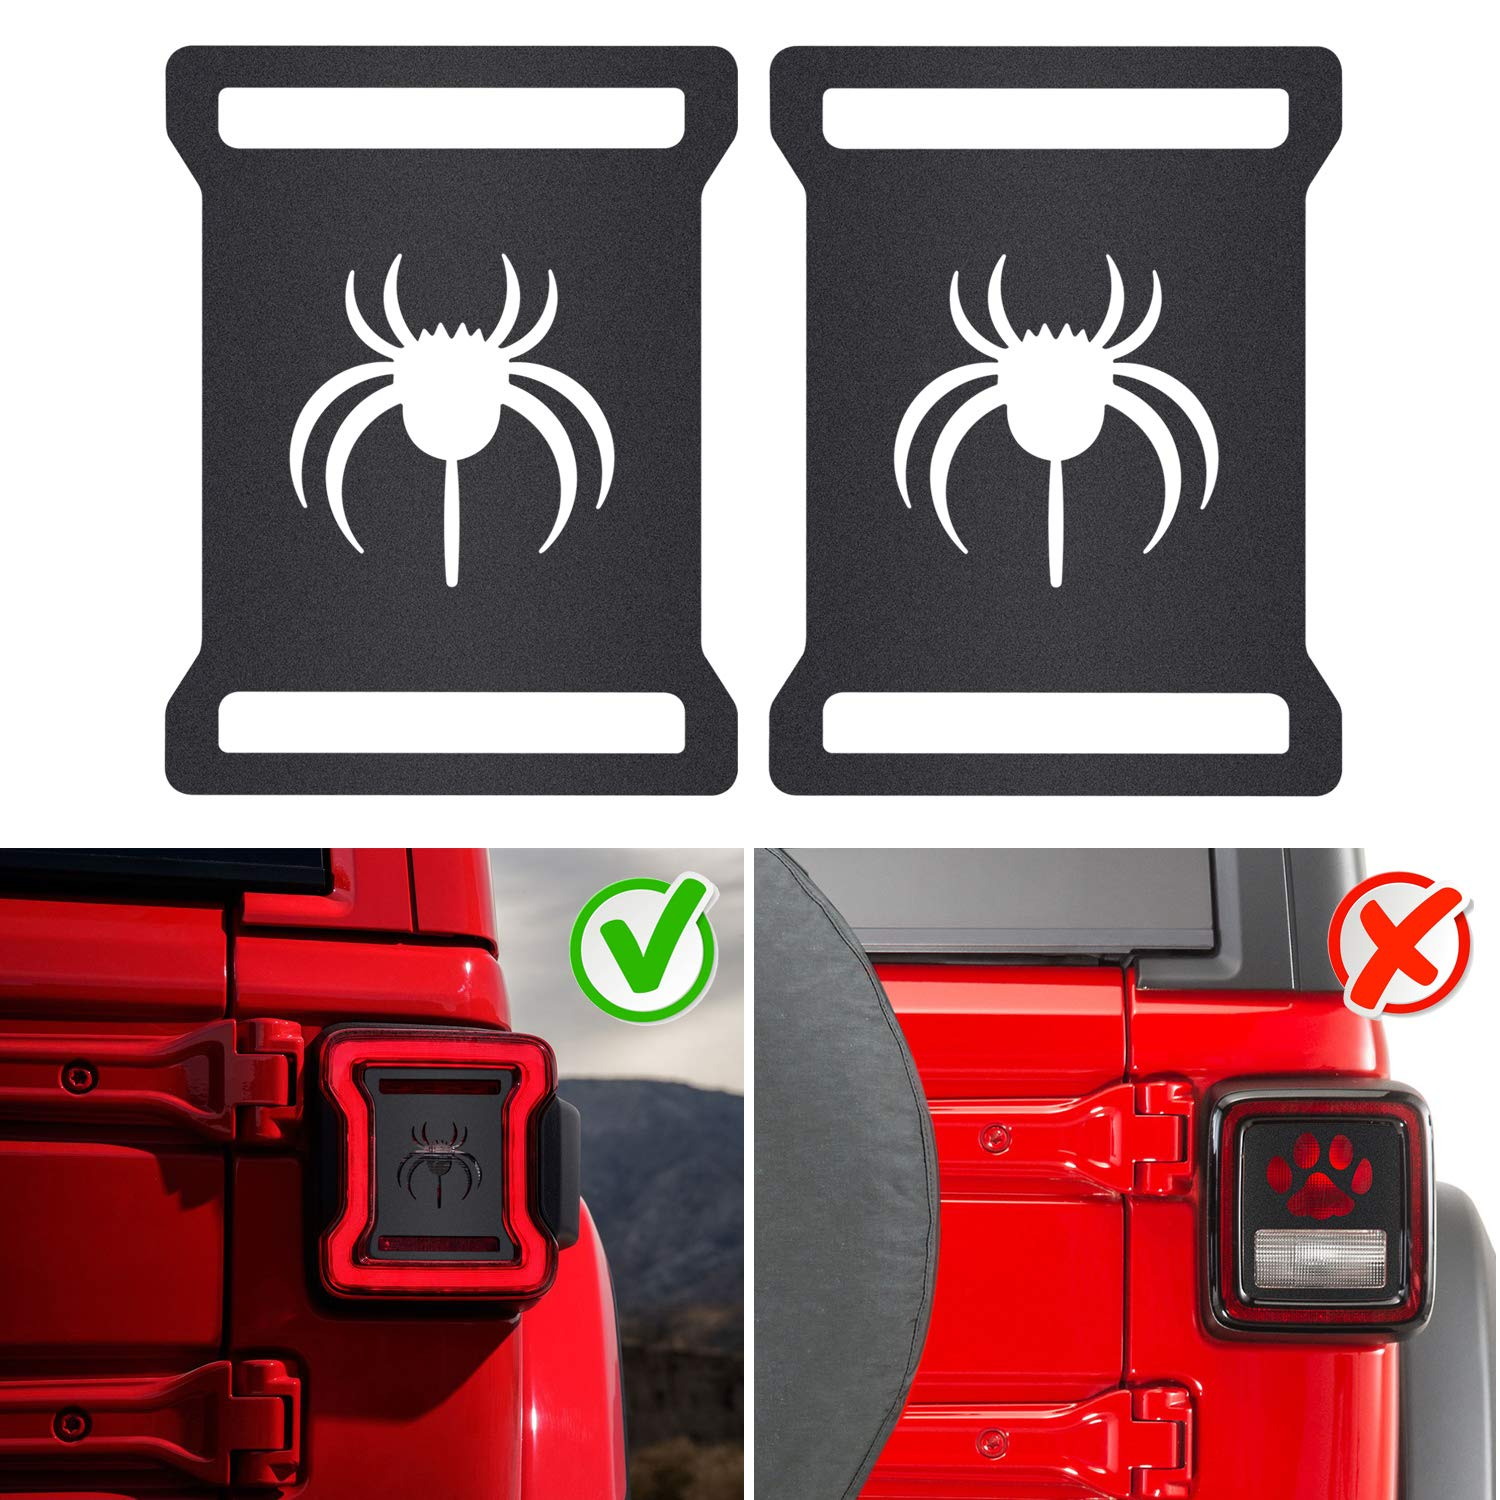 Taillights Covers Tail Light Guard Rear Light Protector Cover Trim Matte Black Exterior Accessories for 2018 2019 Jeep Wrangler JL JLU Sunluway Spider Style